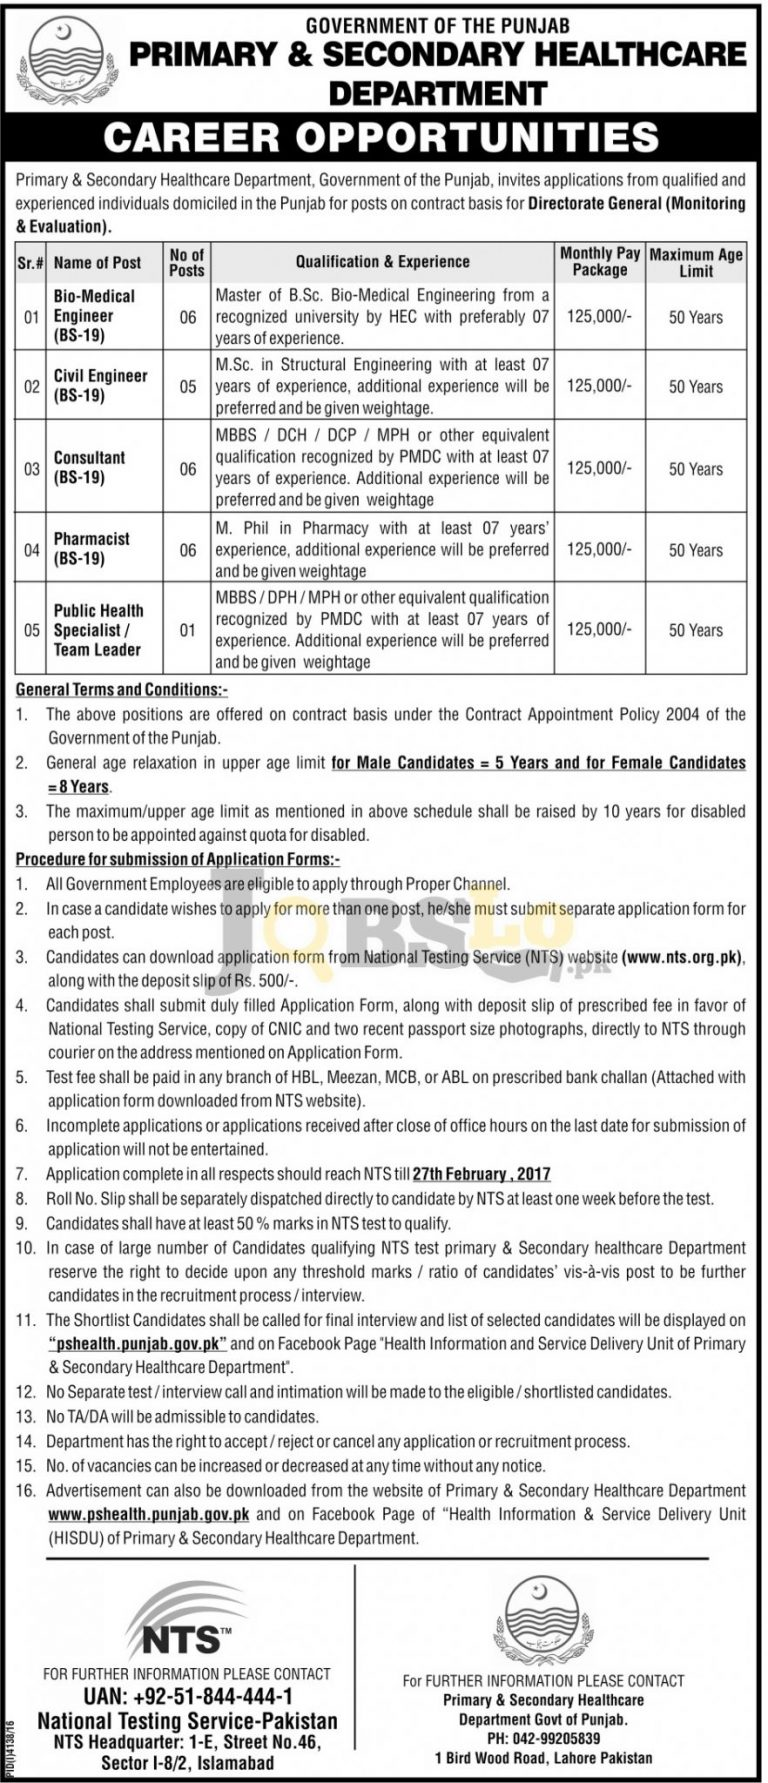 Primary & Secondary Healthcare Department Punjab Jobs 2017 NTS Form Download